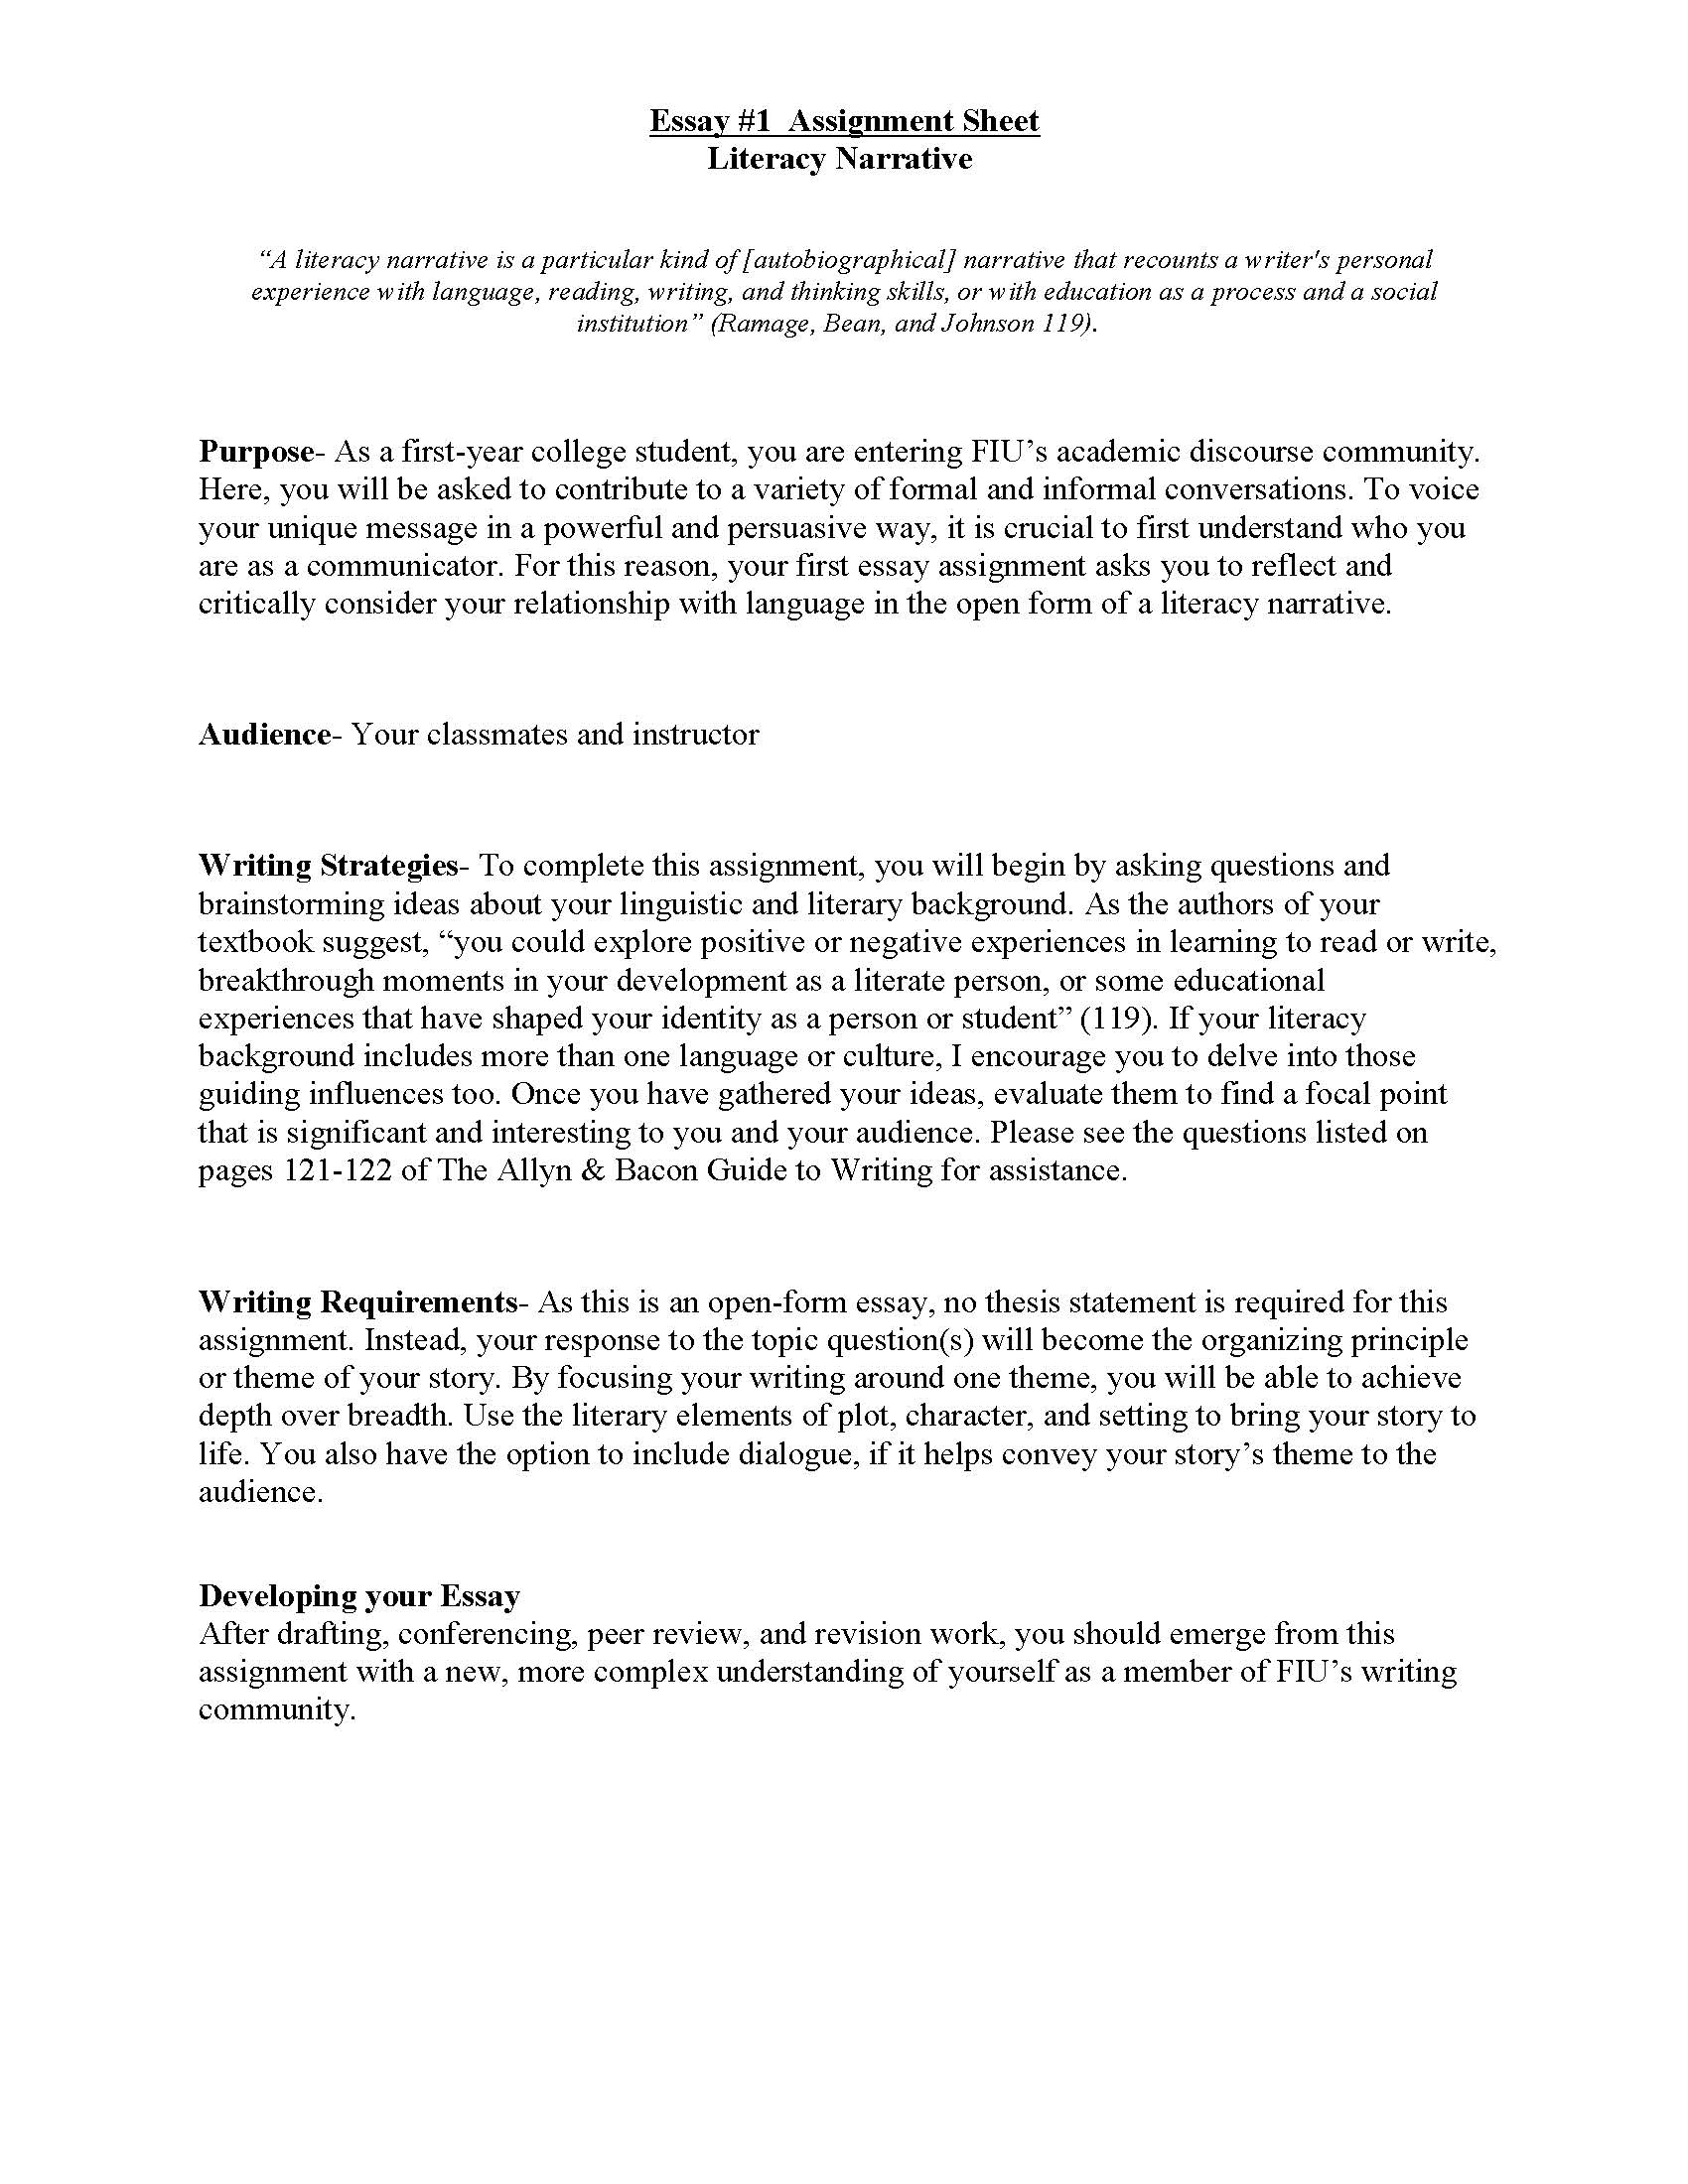 017 Literacy Narrative Unit Assignment Spring 2012 Page 1s Of Essays Essay Rare Examples Writing College For Students High School Full